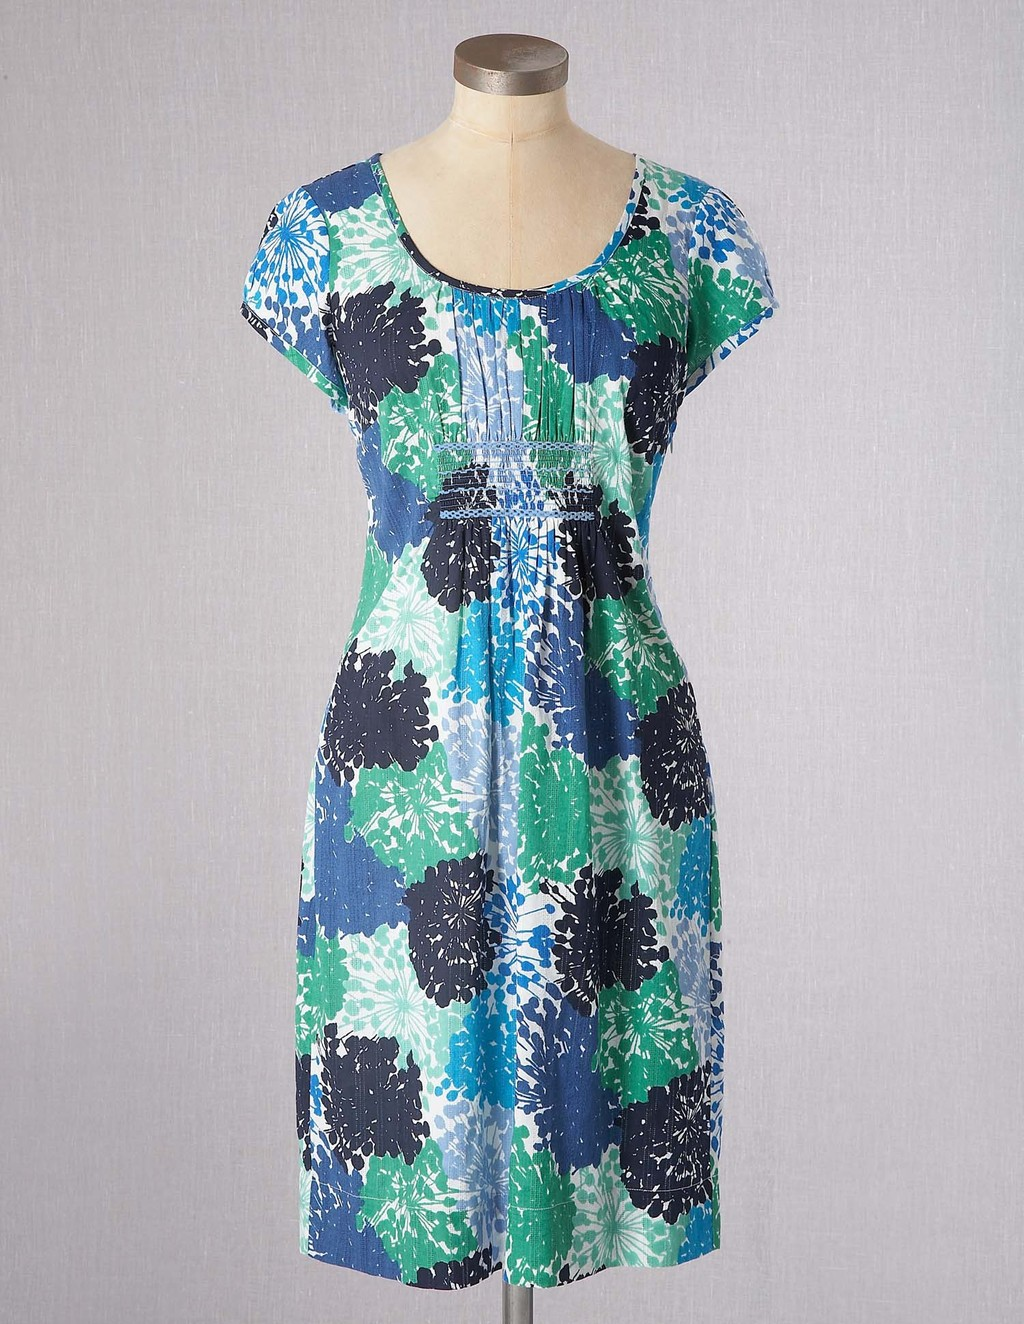 Breezy Beach Dress - neckline: round neck; sleeve style: capped; fit: empire; style: sundress; bust detail: subtle bust detail; predominant colour: royal blue; occasions: casual, holiday; length: just above the knee; fibres: cotton - 100%; hip detail: subtle/flattering hip detail; sleeve length: short sleeve; pattern type: fabric; pattern size: big & busy; pattern: florals; texture group: jersey - stretchy/drapey; season: s/s 2013